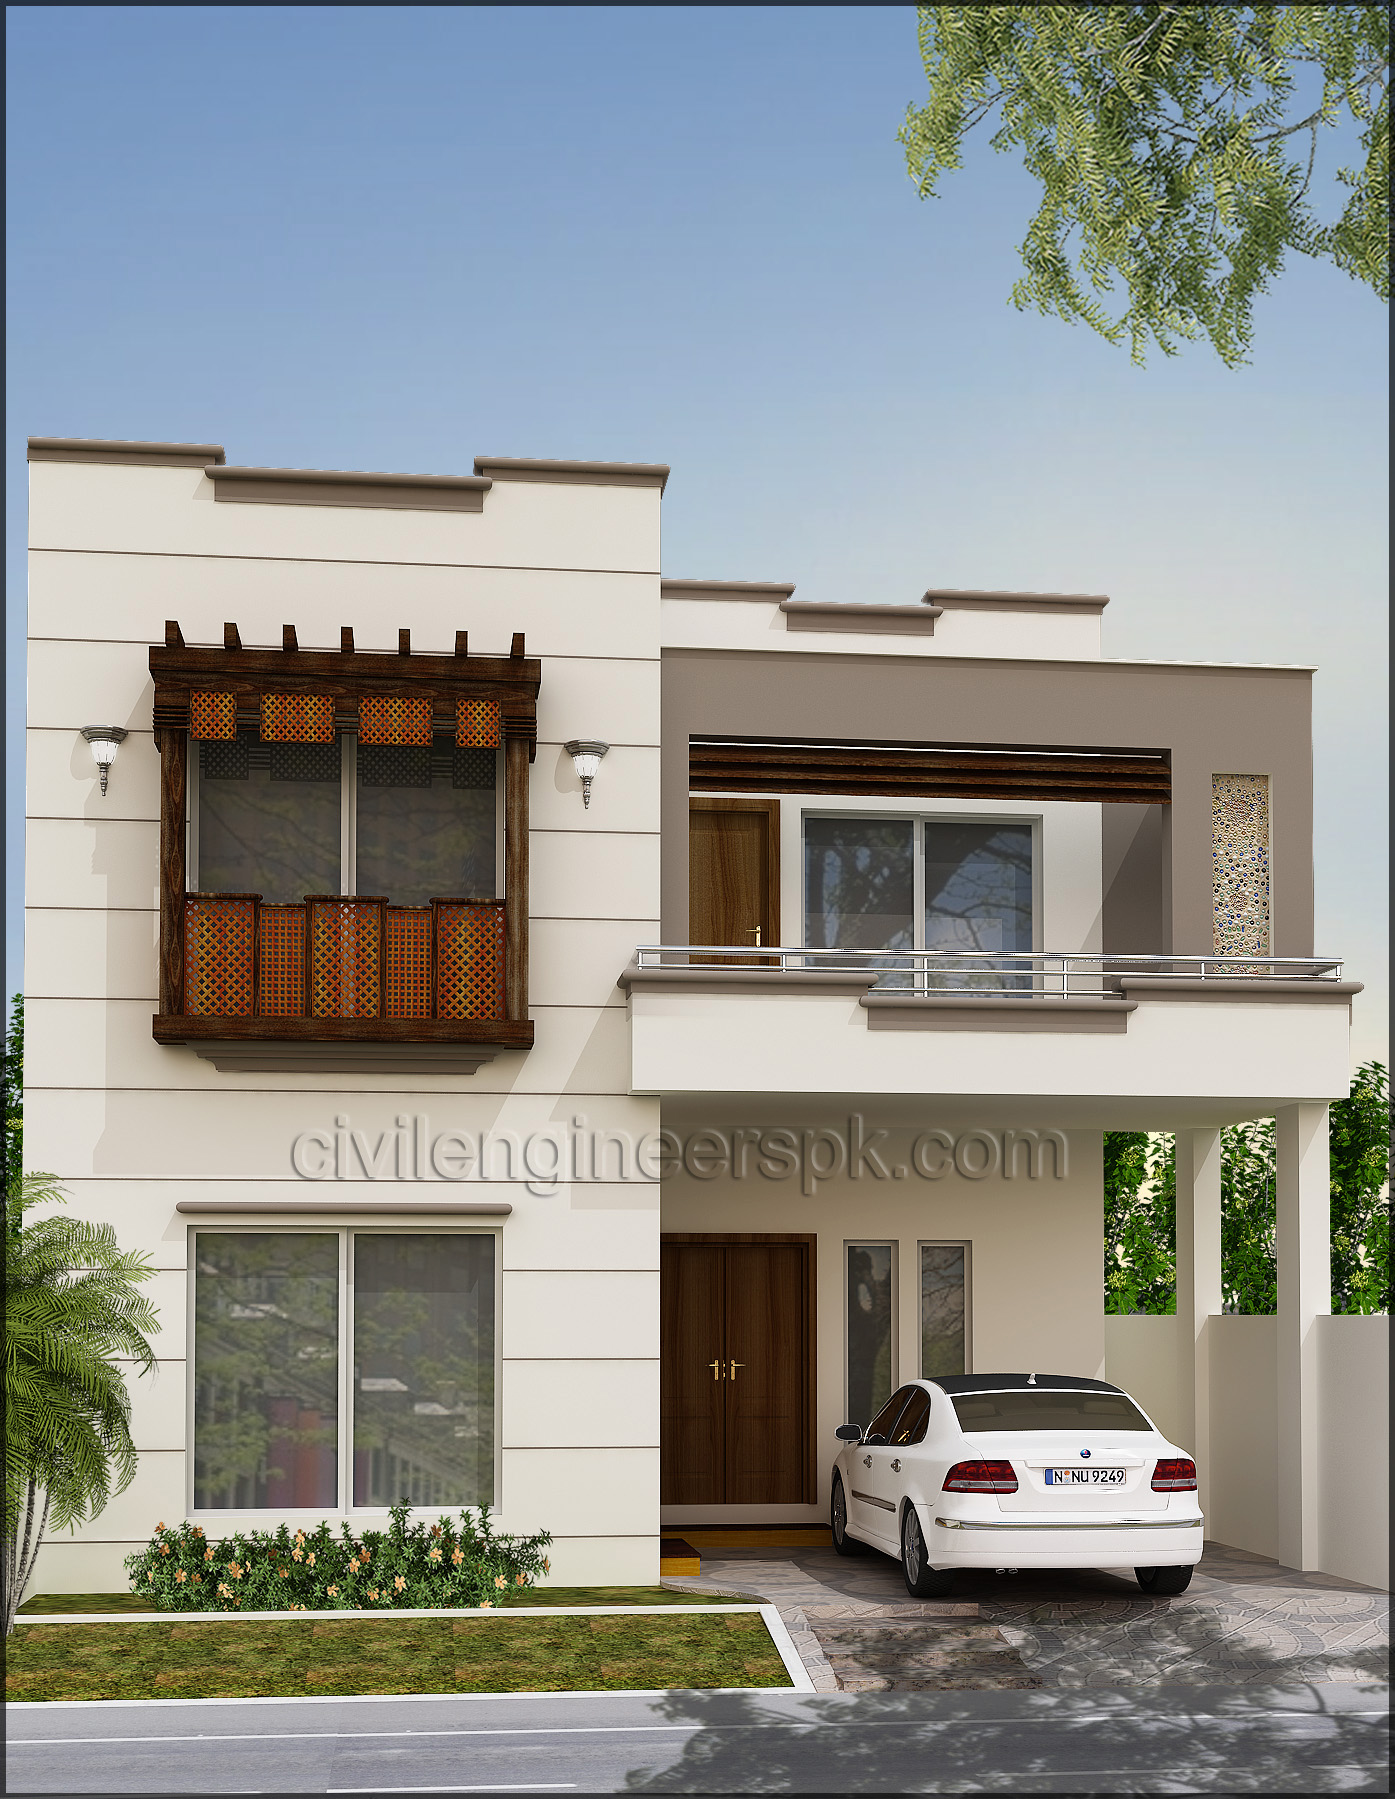 Home Front Elevation Pictures N Style : Front views civil engineers pk